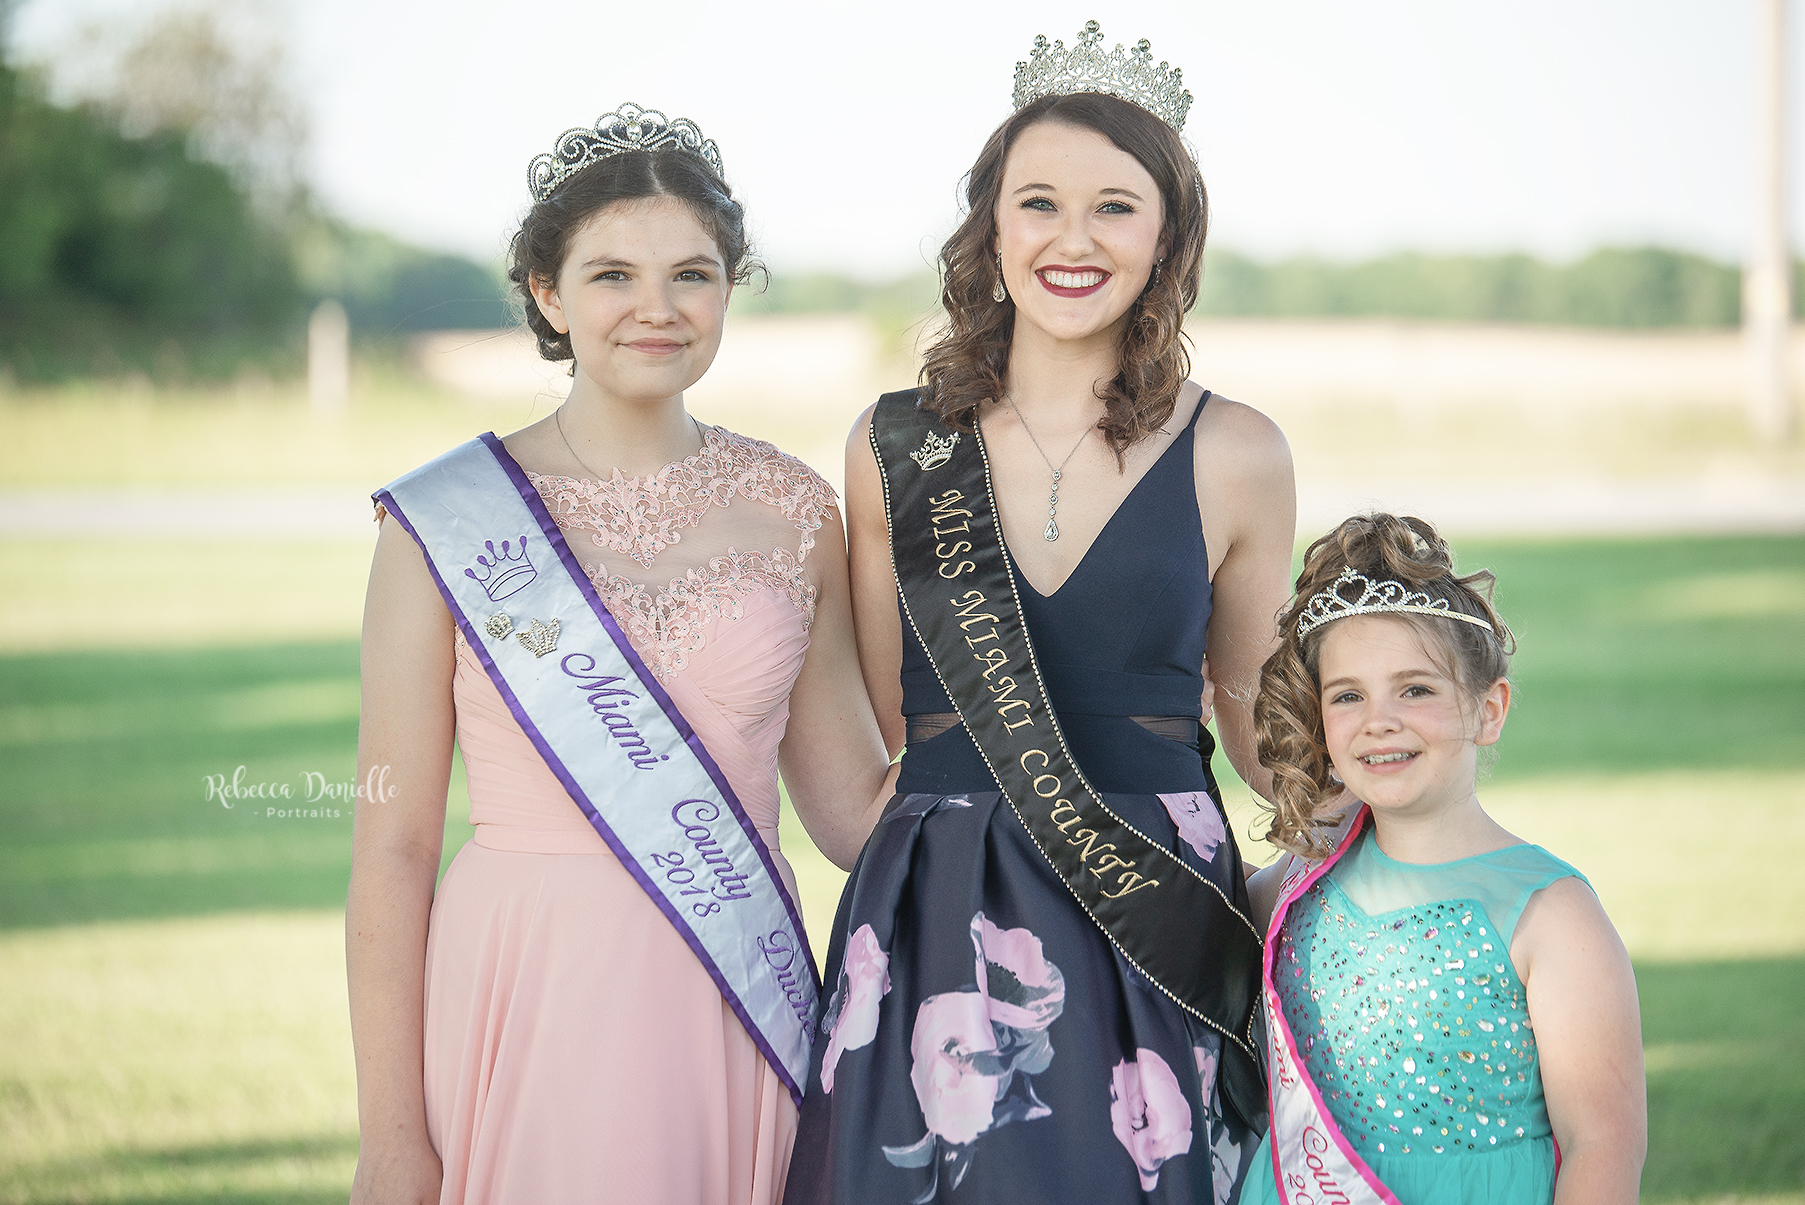 Outgoing 2018 Miami County Fair Royalty:  Miss Miami County 2018, Eilee Densiton MIami County Duchess 2018, Elizabeth Pavey Miami County Princess 2018, Lilah Millian